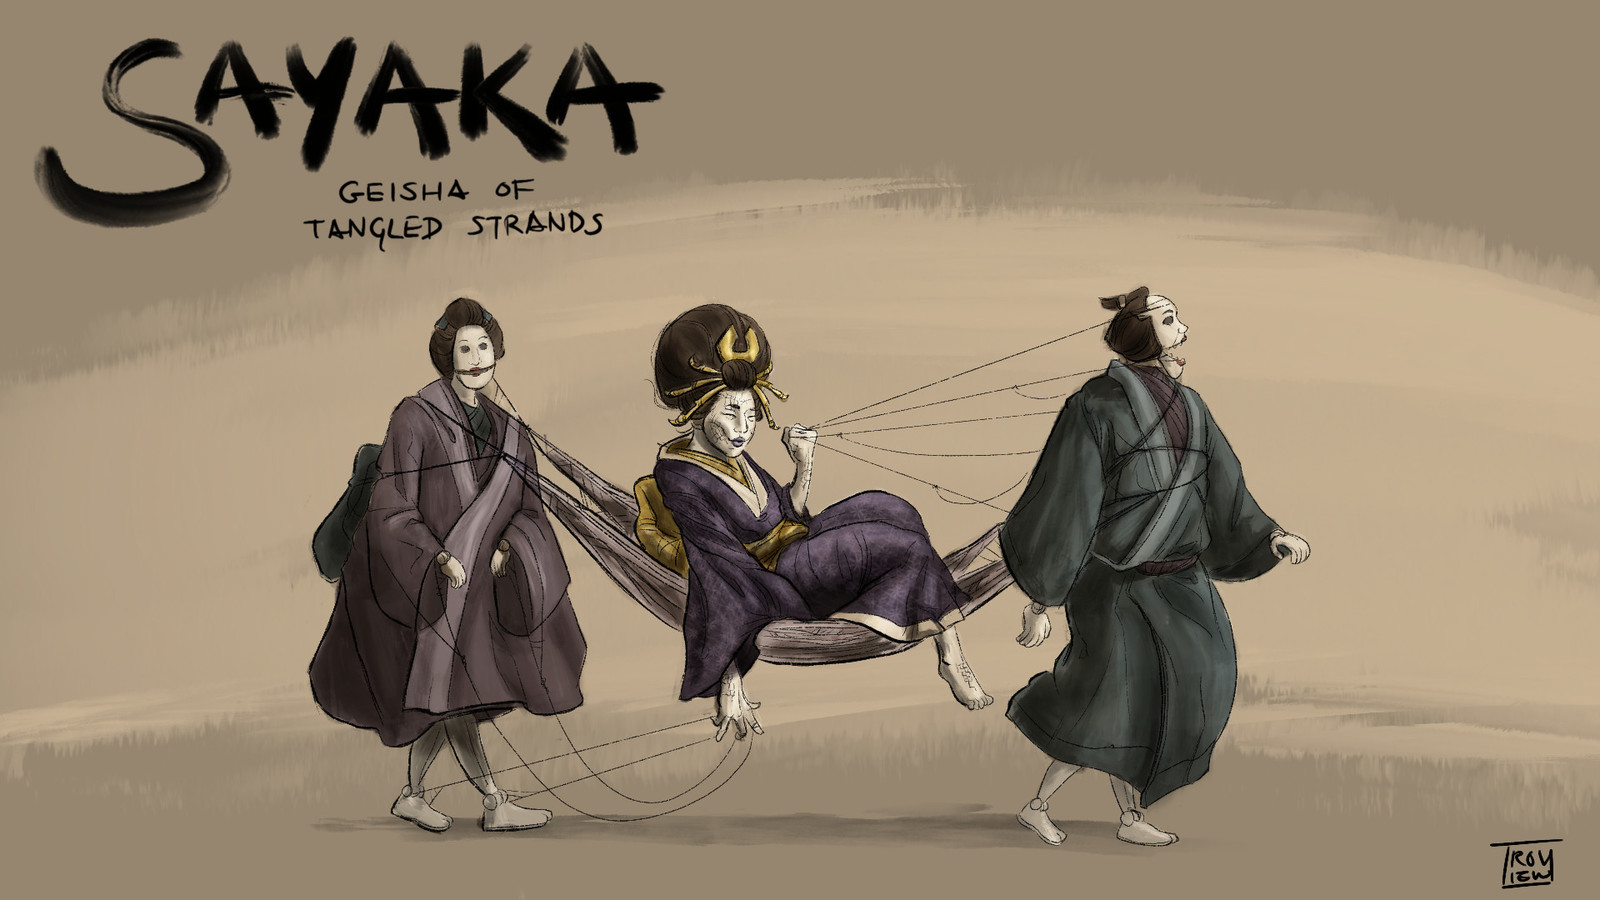 What strange circumstances led Sayaka to her power? The Geisha of Tangled Strands is a master of influence and information, as well as less conventional means of guarded whispers, stories of dark magic, writhing webs, and bizarre puppets the size of men.